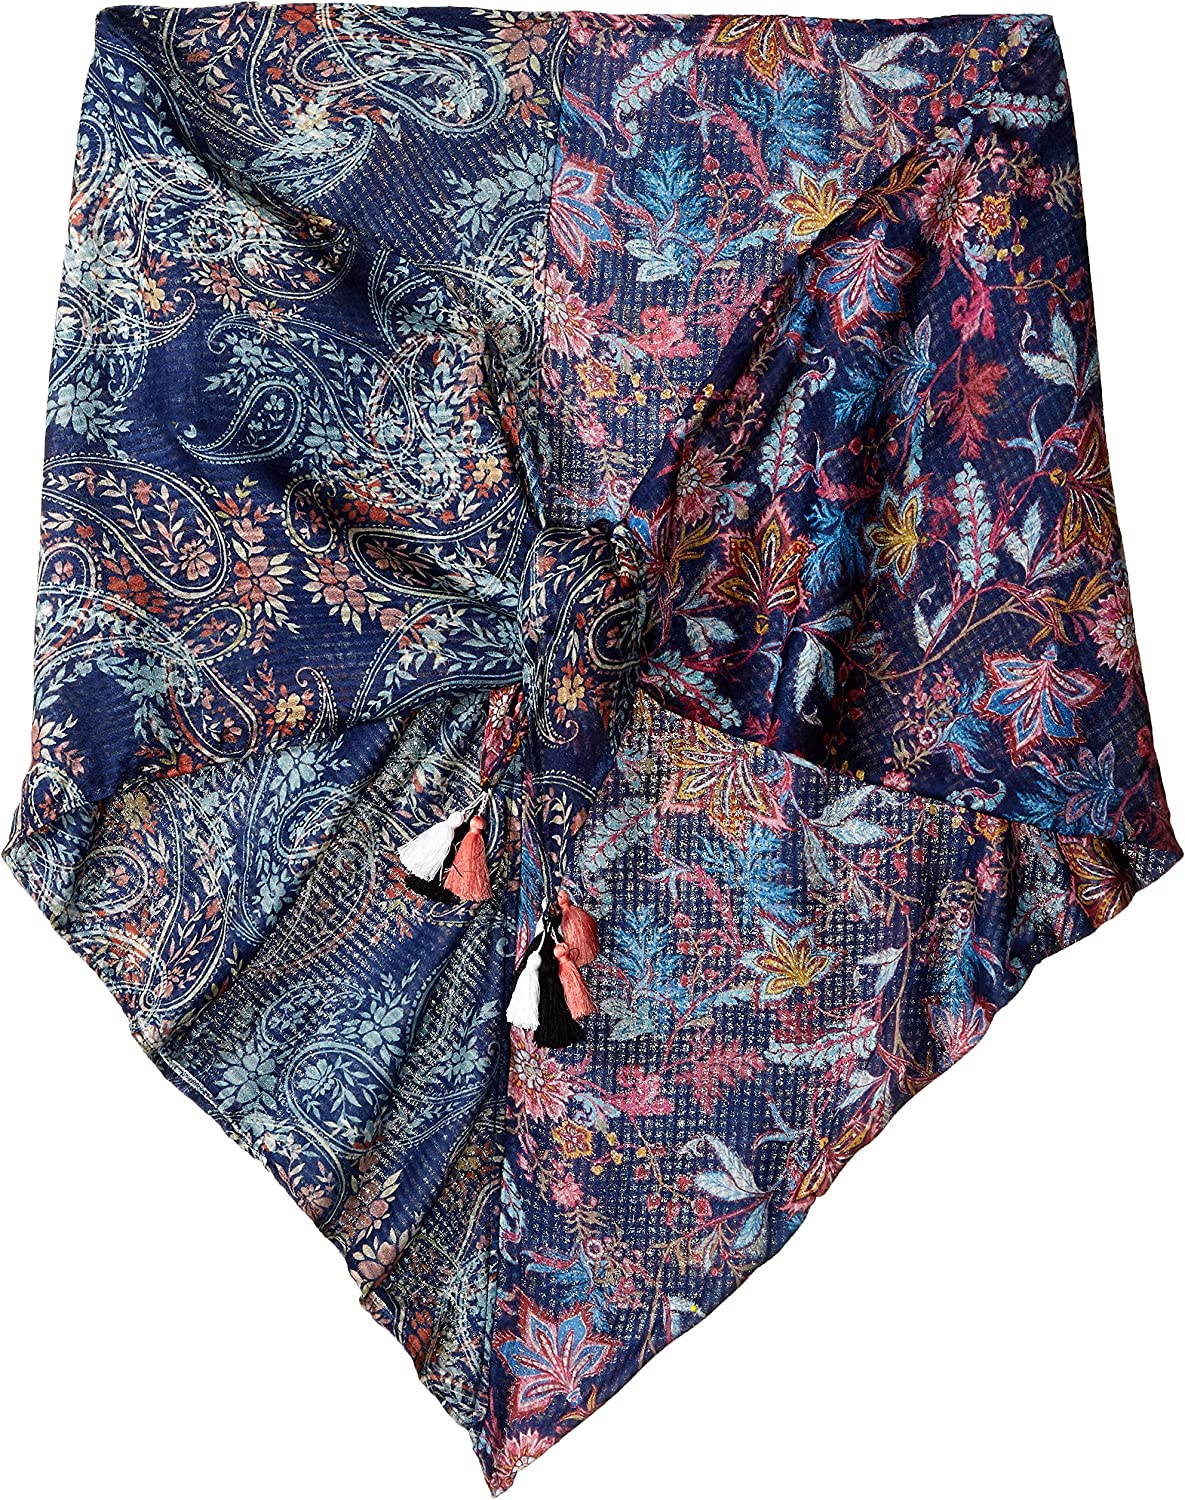 LAUNDRY BY SHELLI SEGAL Women's Paisley Floral Triangular Wrap, midnight multi, One Size